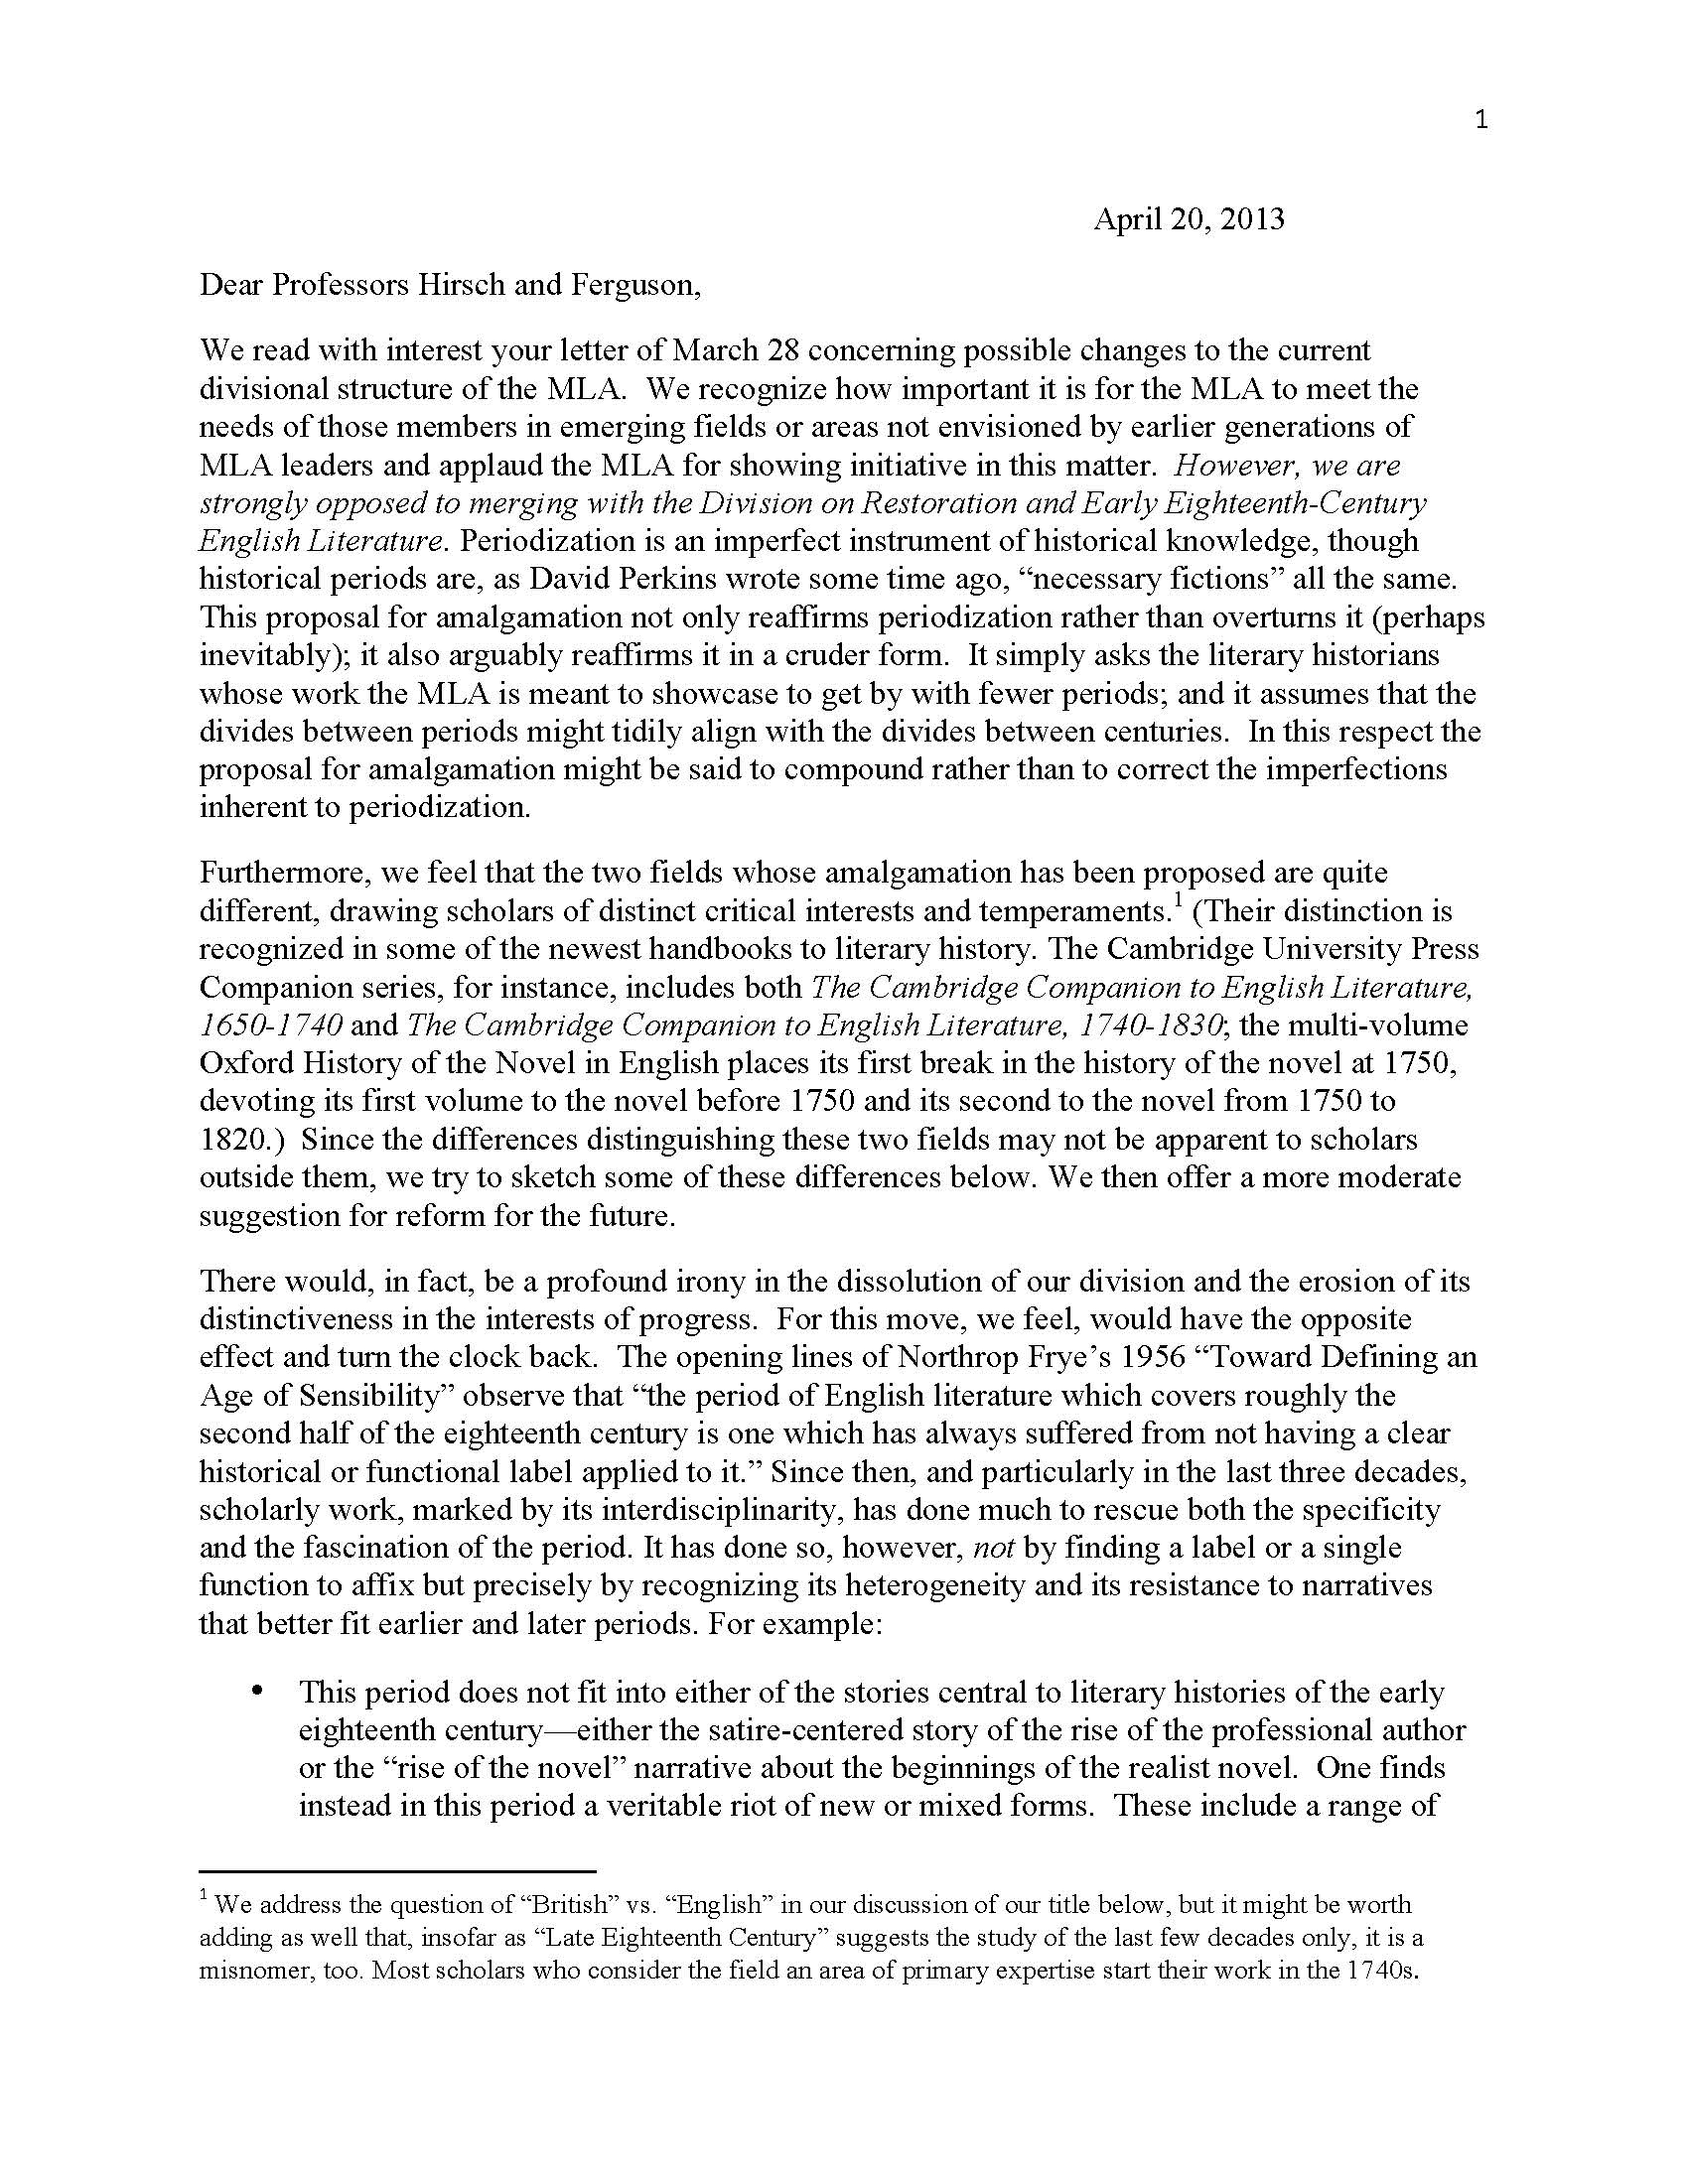 008 Essay Proposal Response To Marianne Hirsch Margaret Ferguson Rev Final Copy Page 1 Top Apa Format Example Samples Full